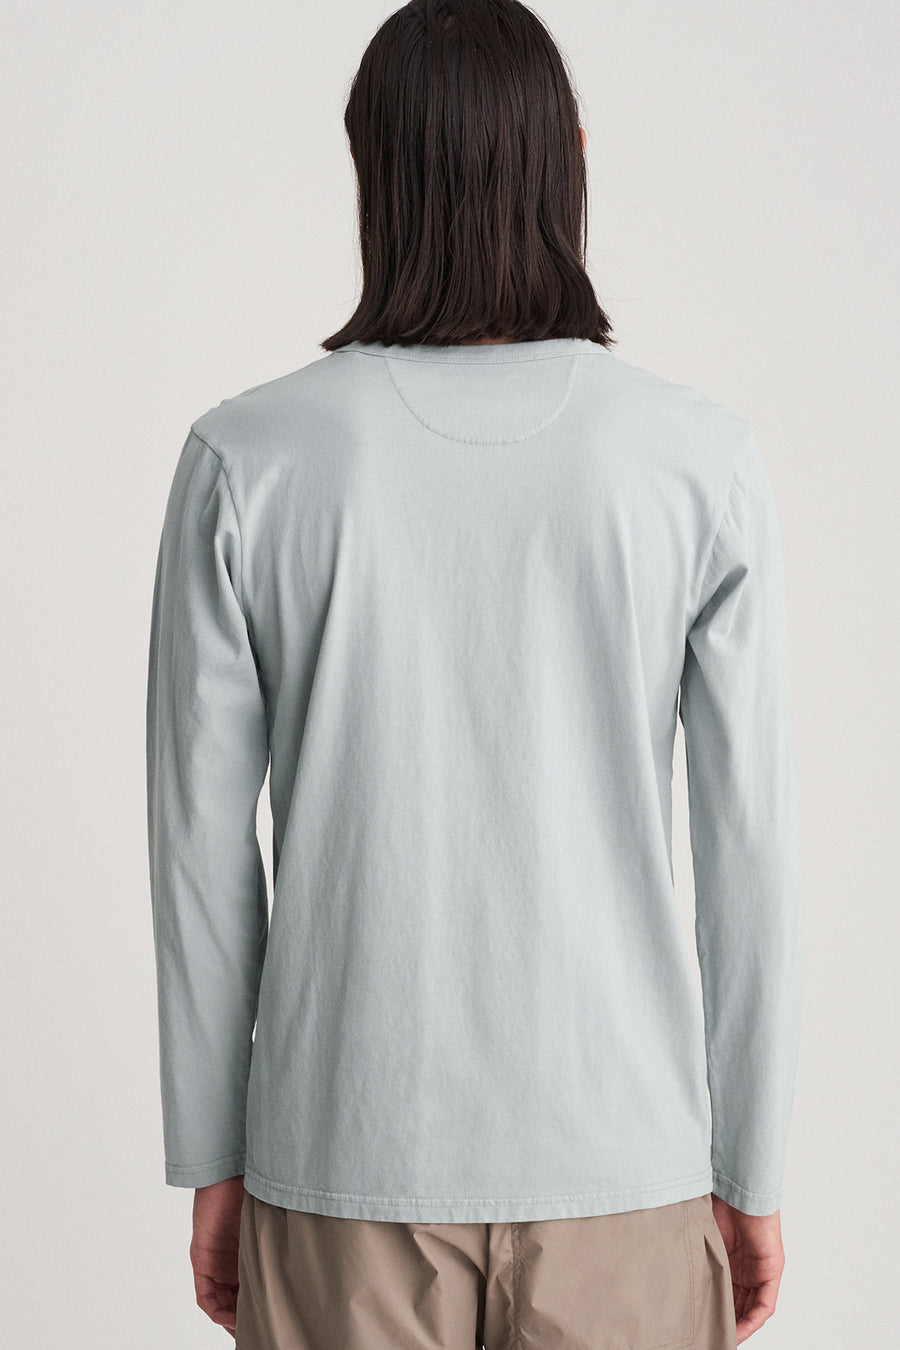 James Pima Long Sleeve Shirt - Stone Blue - Pavilion